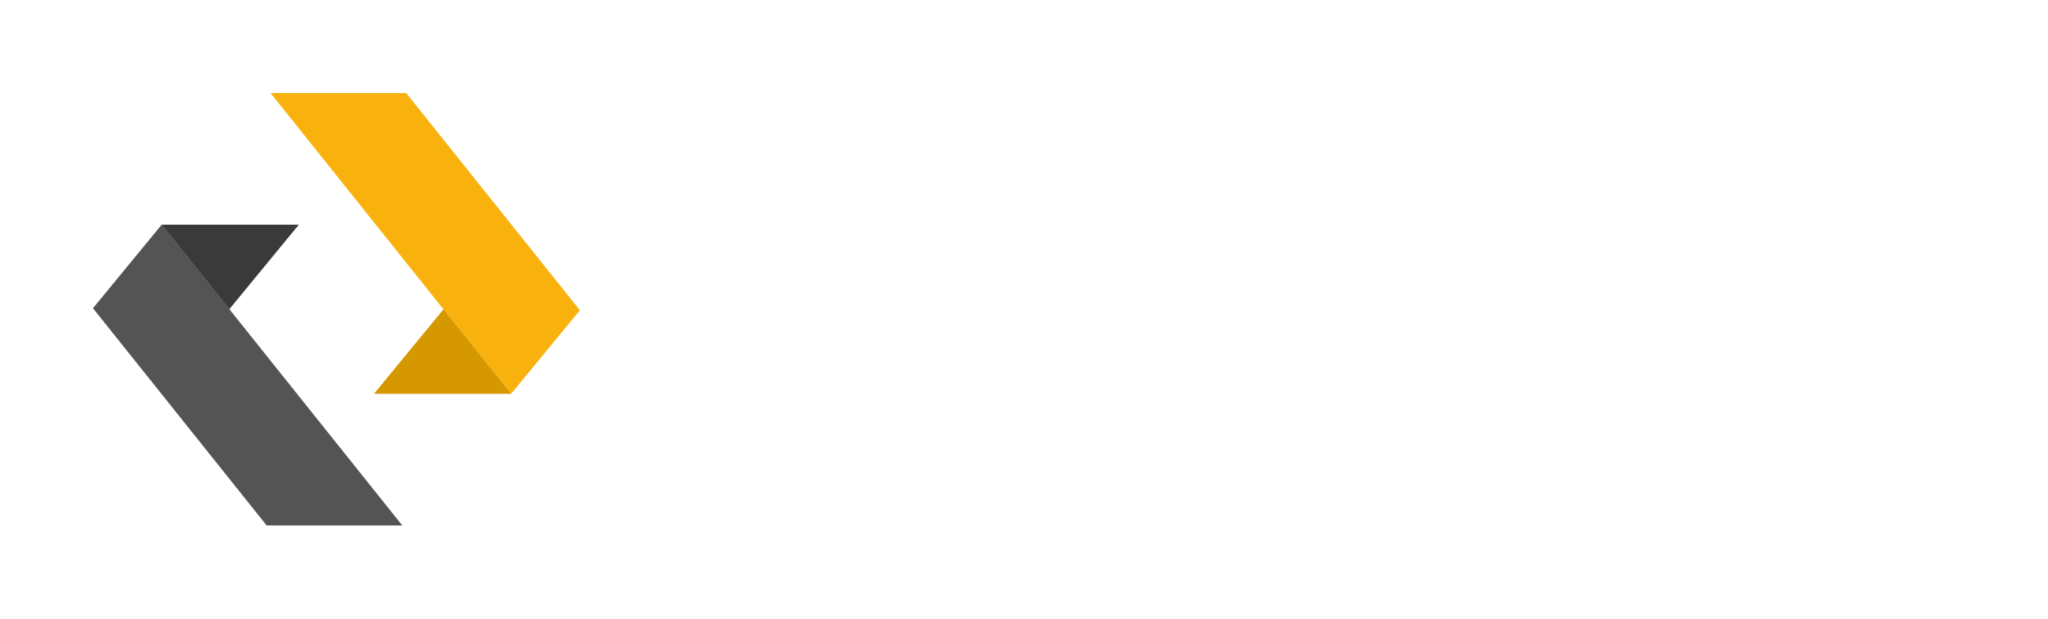 Prolink Engineering - Industriële Automatisering